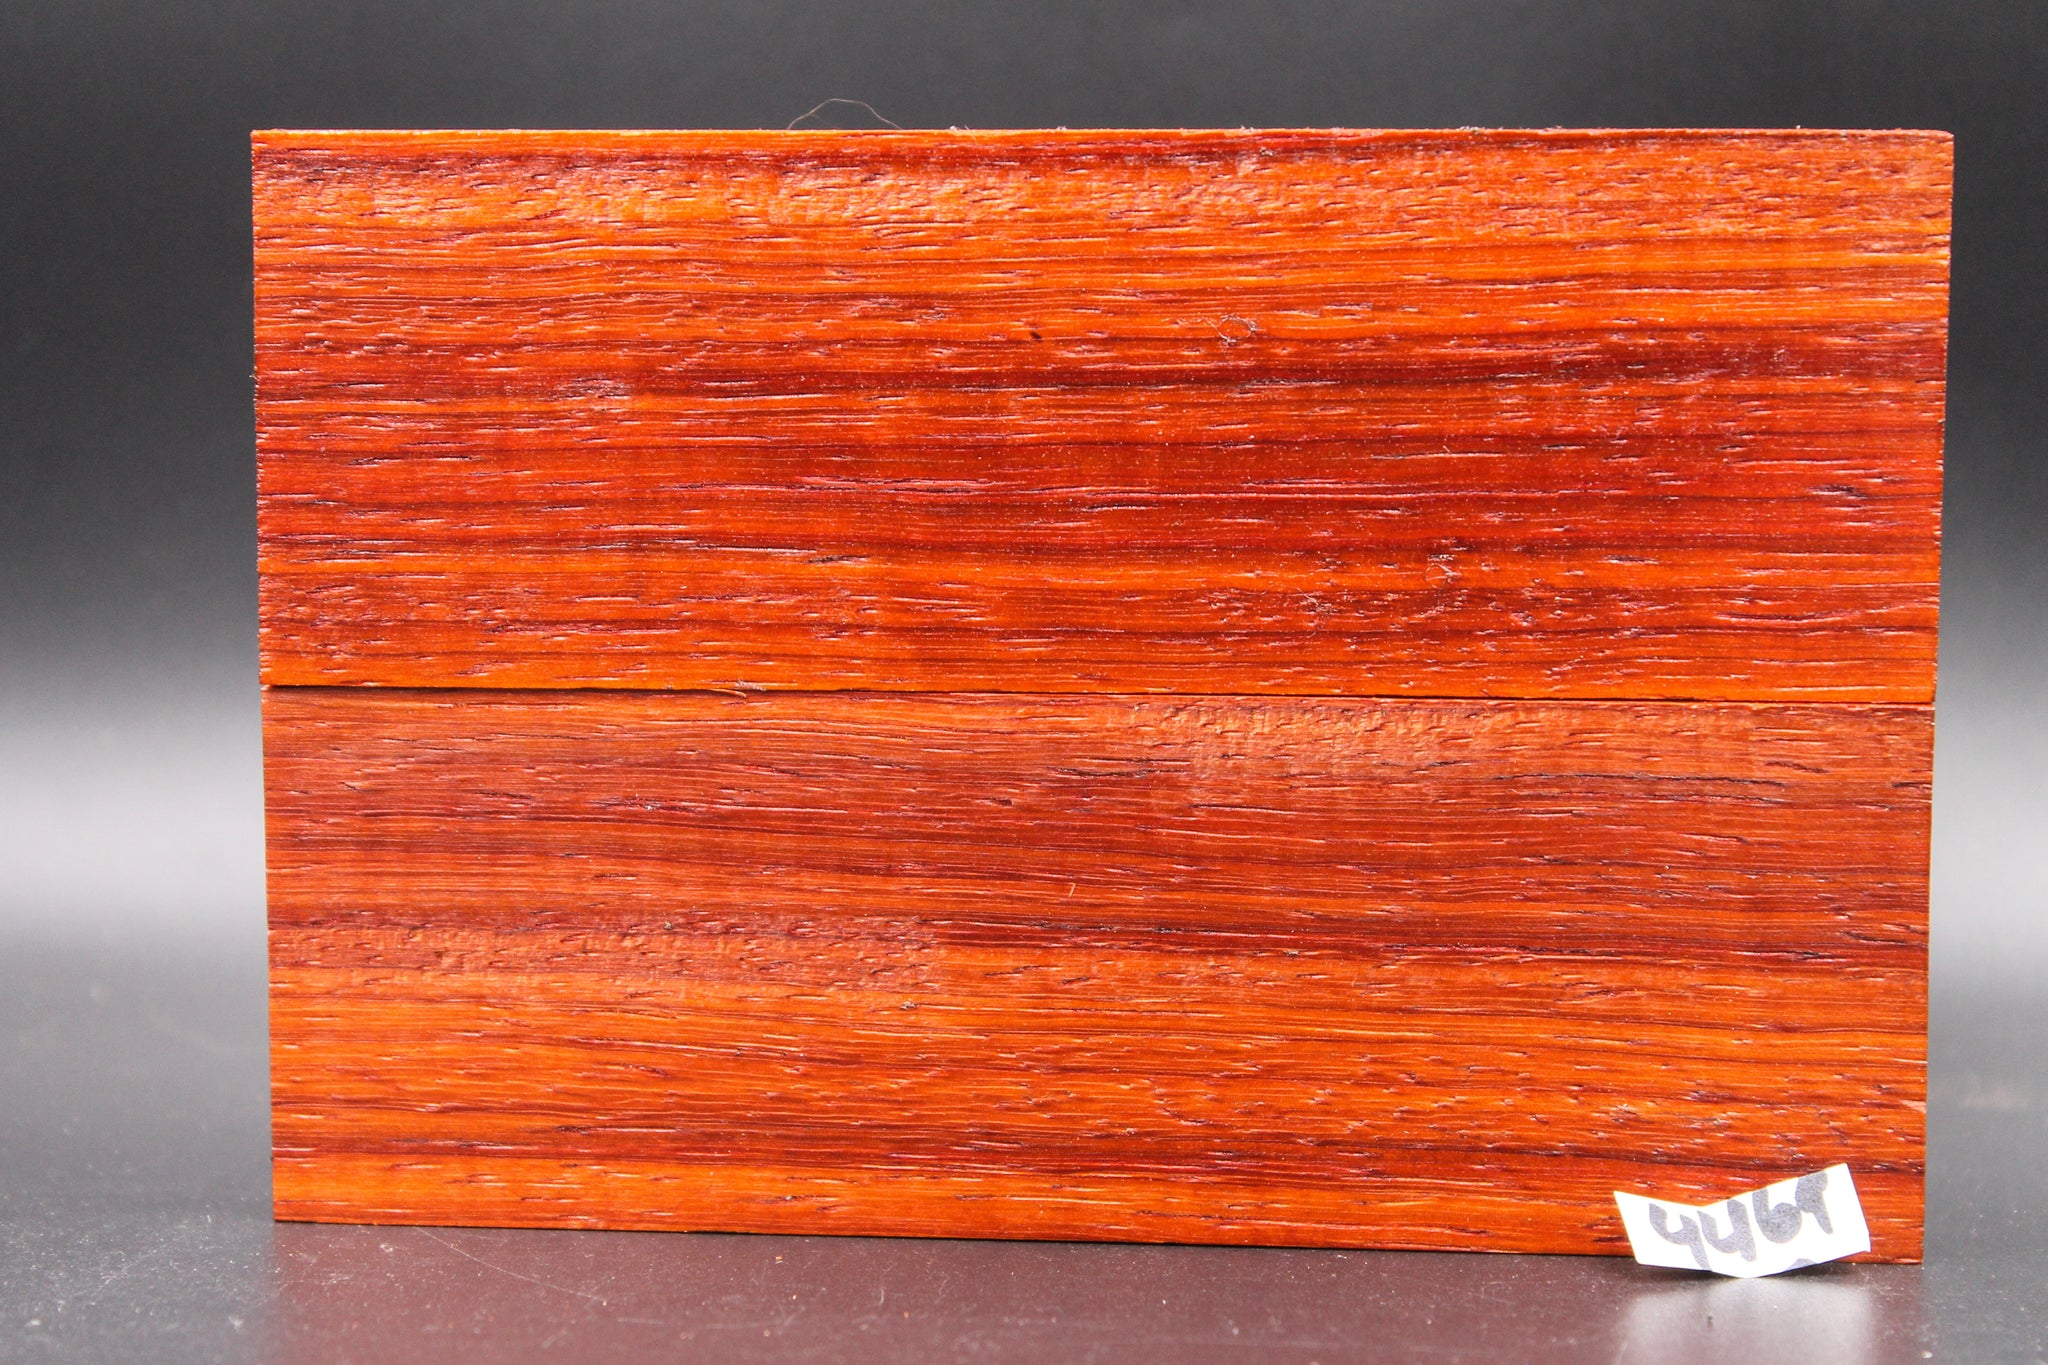 Rare Exotic Padauk Wood Knife Scales, Wood Blank Handle, Pistol Grips 4469 - Exotic Knife Scales | Rundle Woodworks